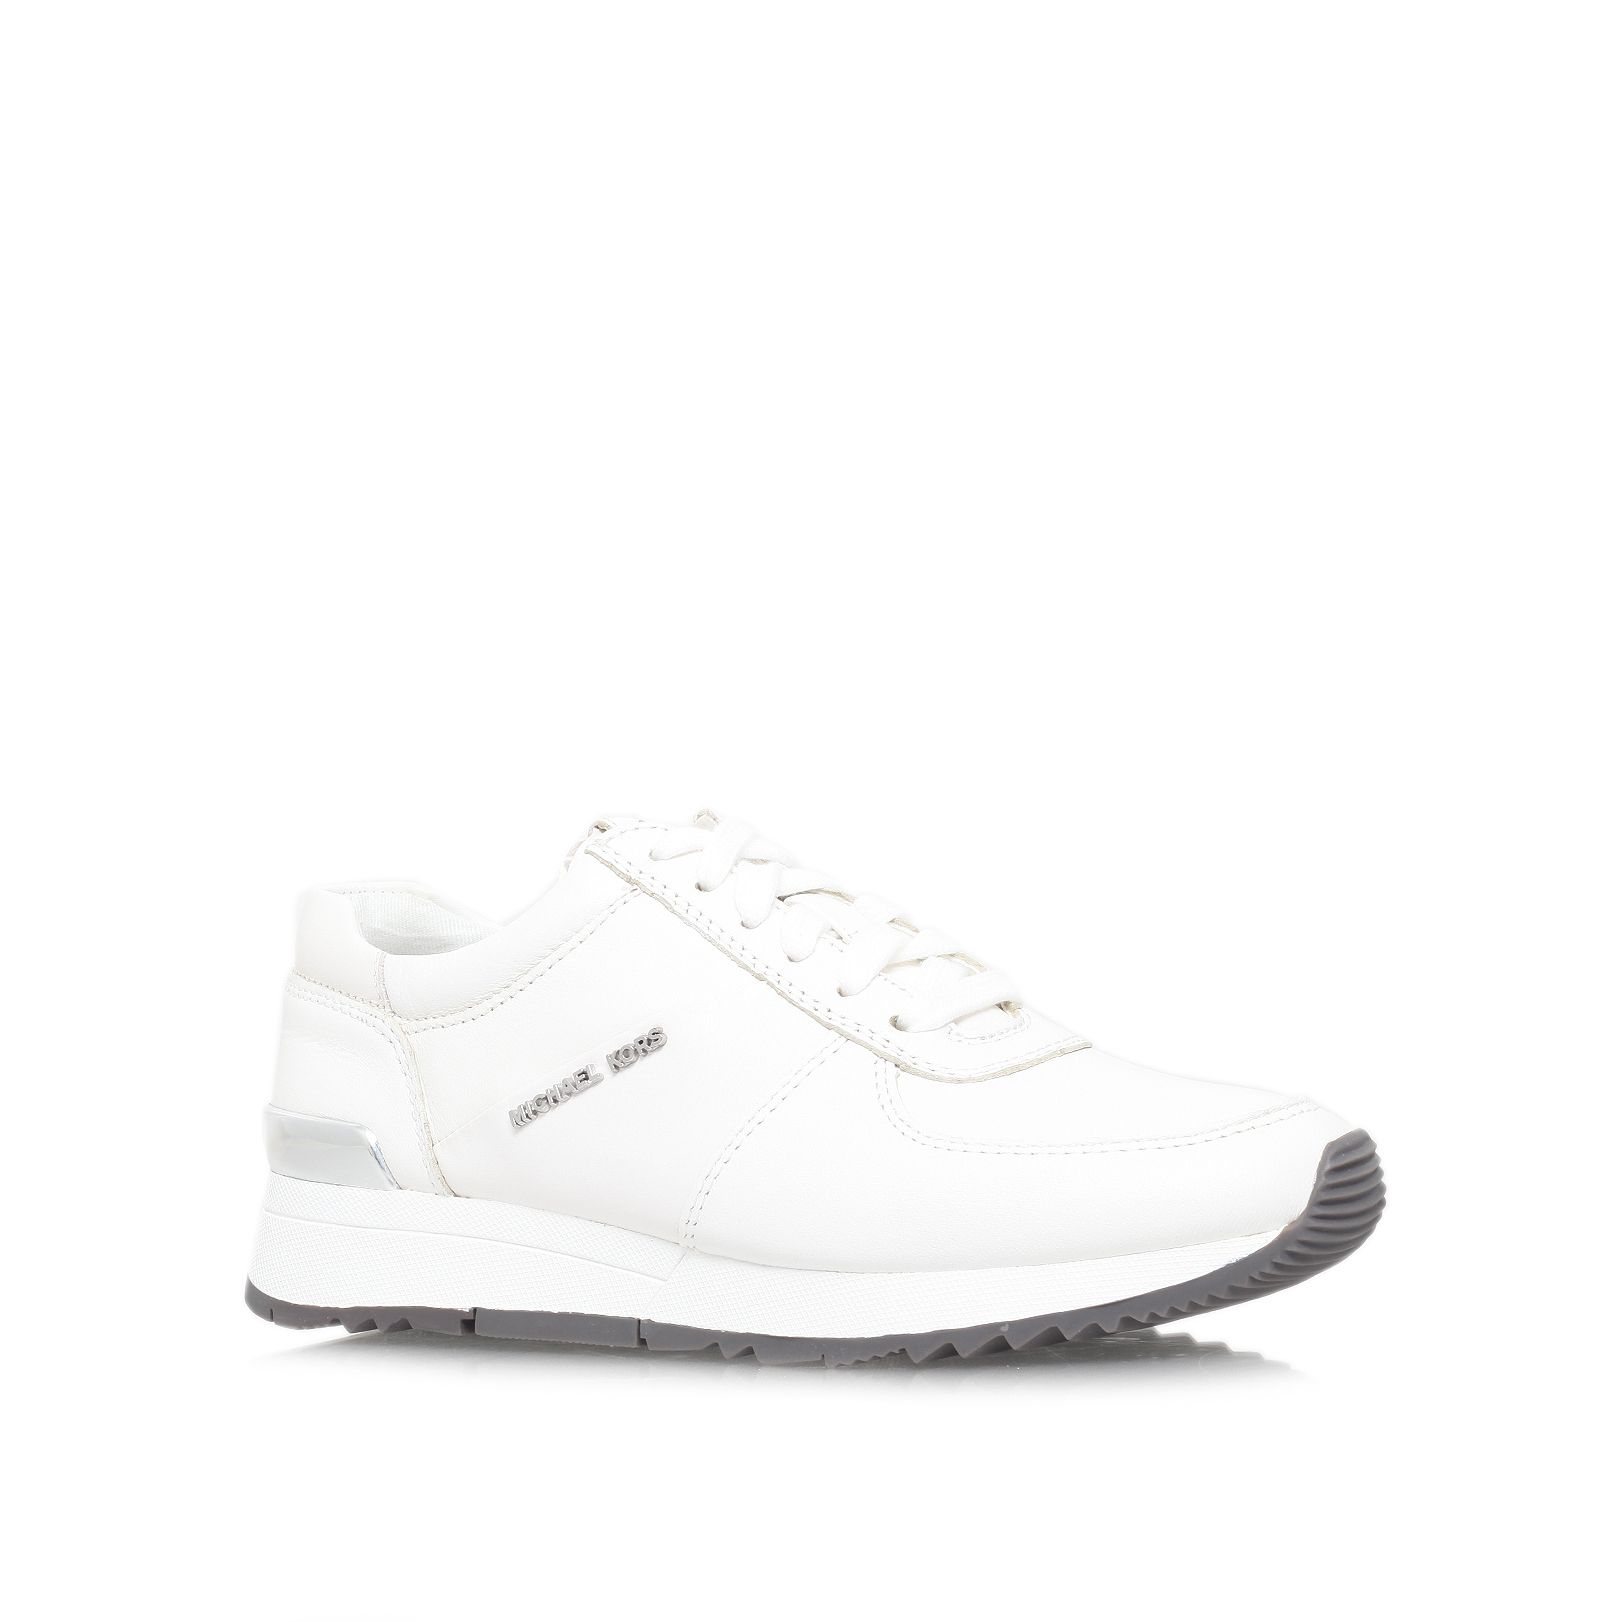 Michael Kors Allie Trainer Trainers, White